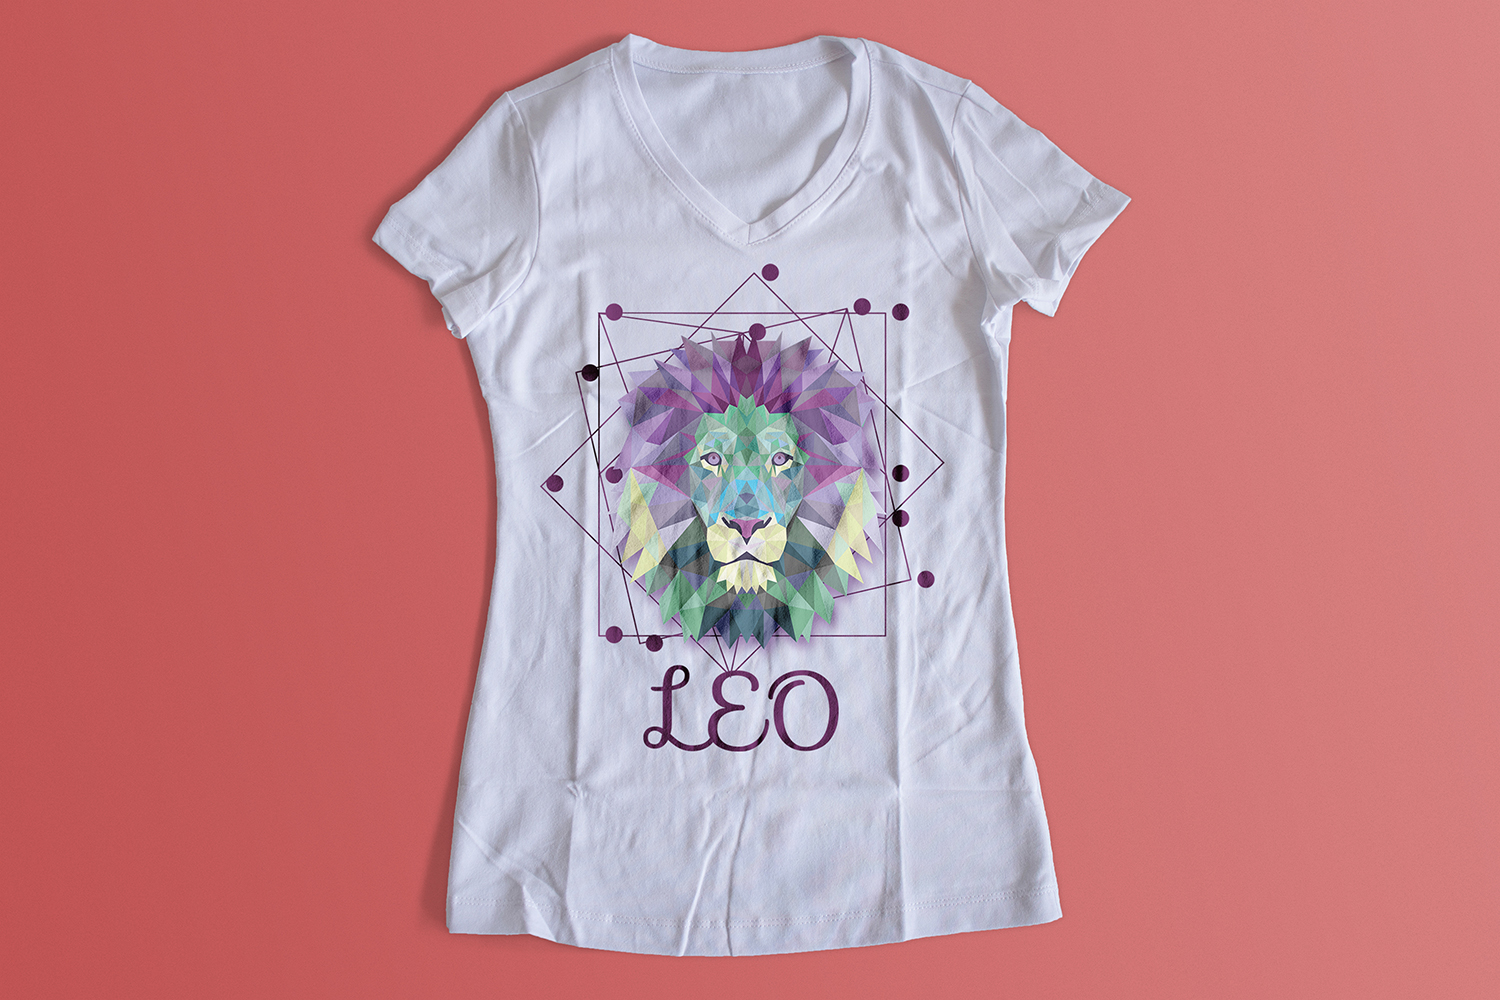 Modern Personable T Shirt Design For Zodiac Fresh By Tgdesigns